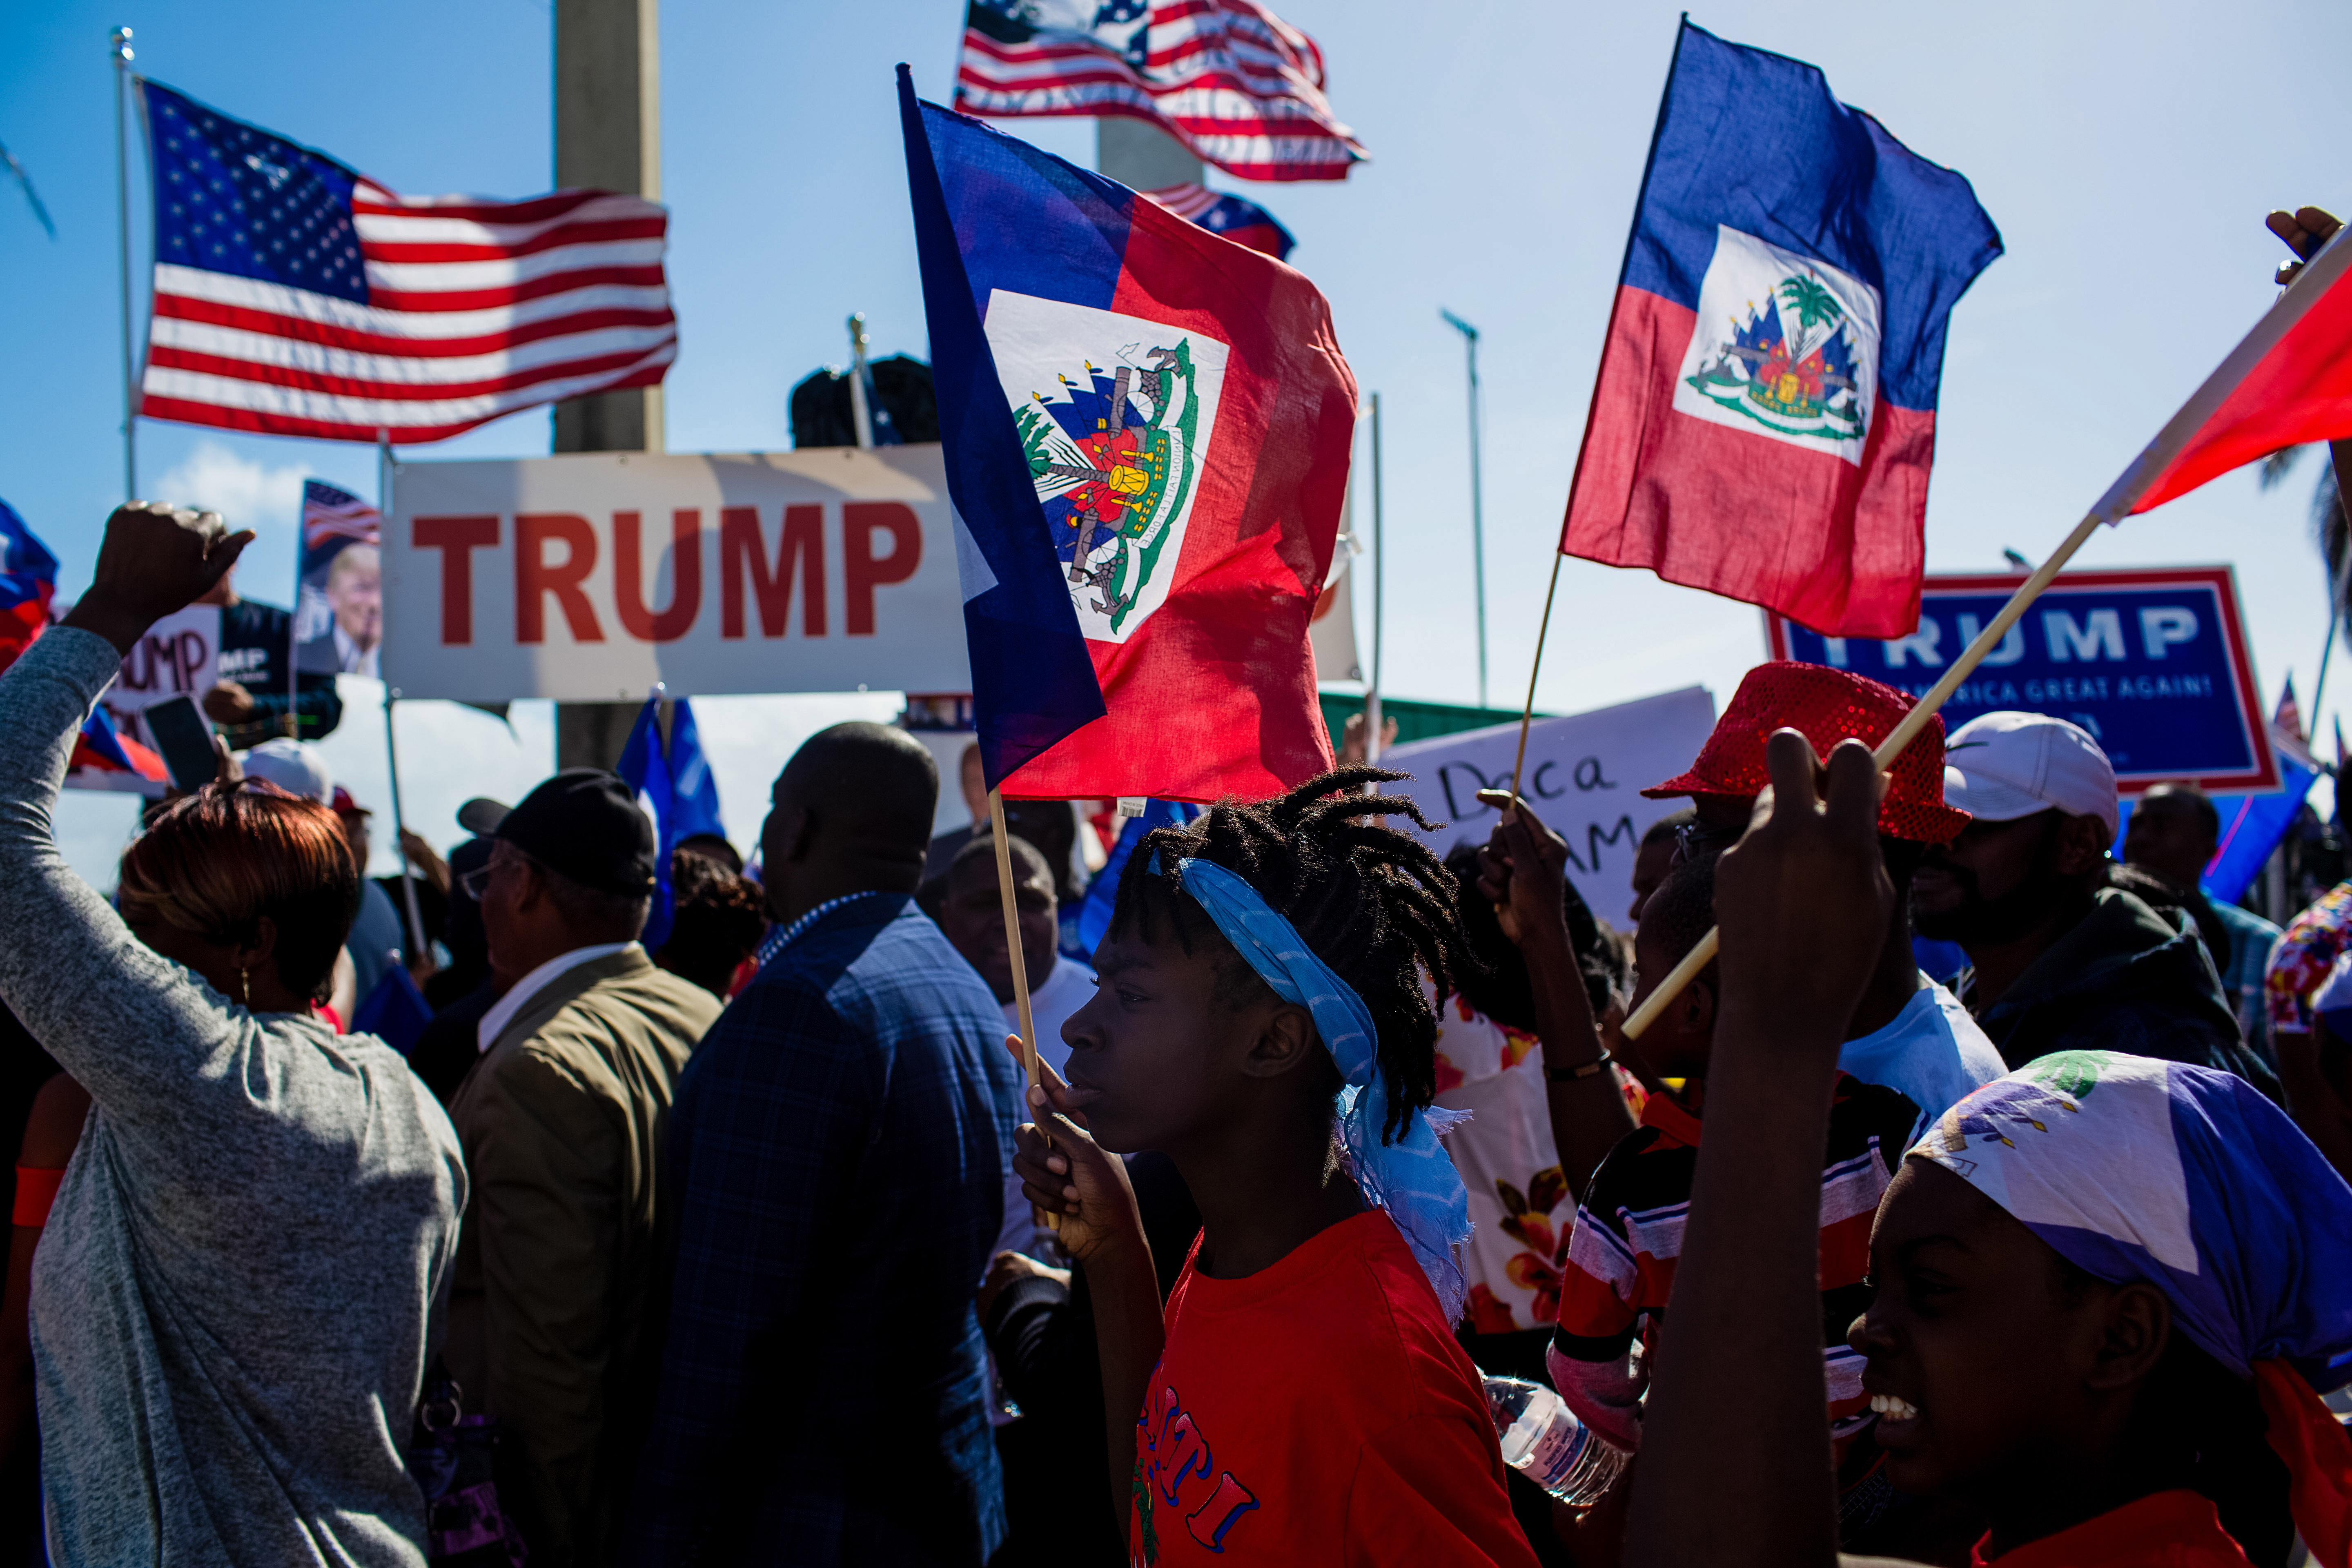 Demonstrators hold Haitian and American flags during a protest against U.S. President Donald Trump.